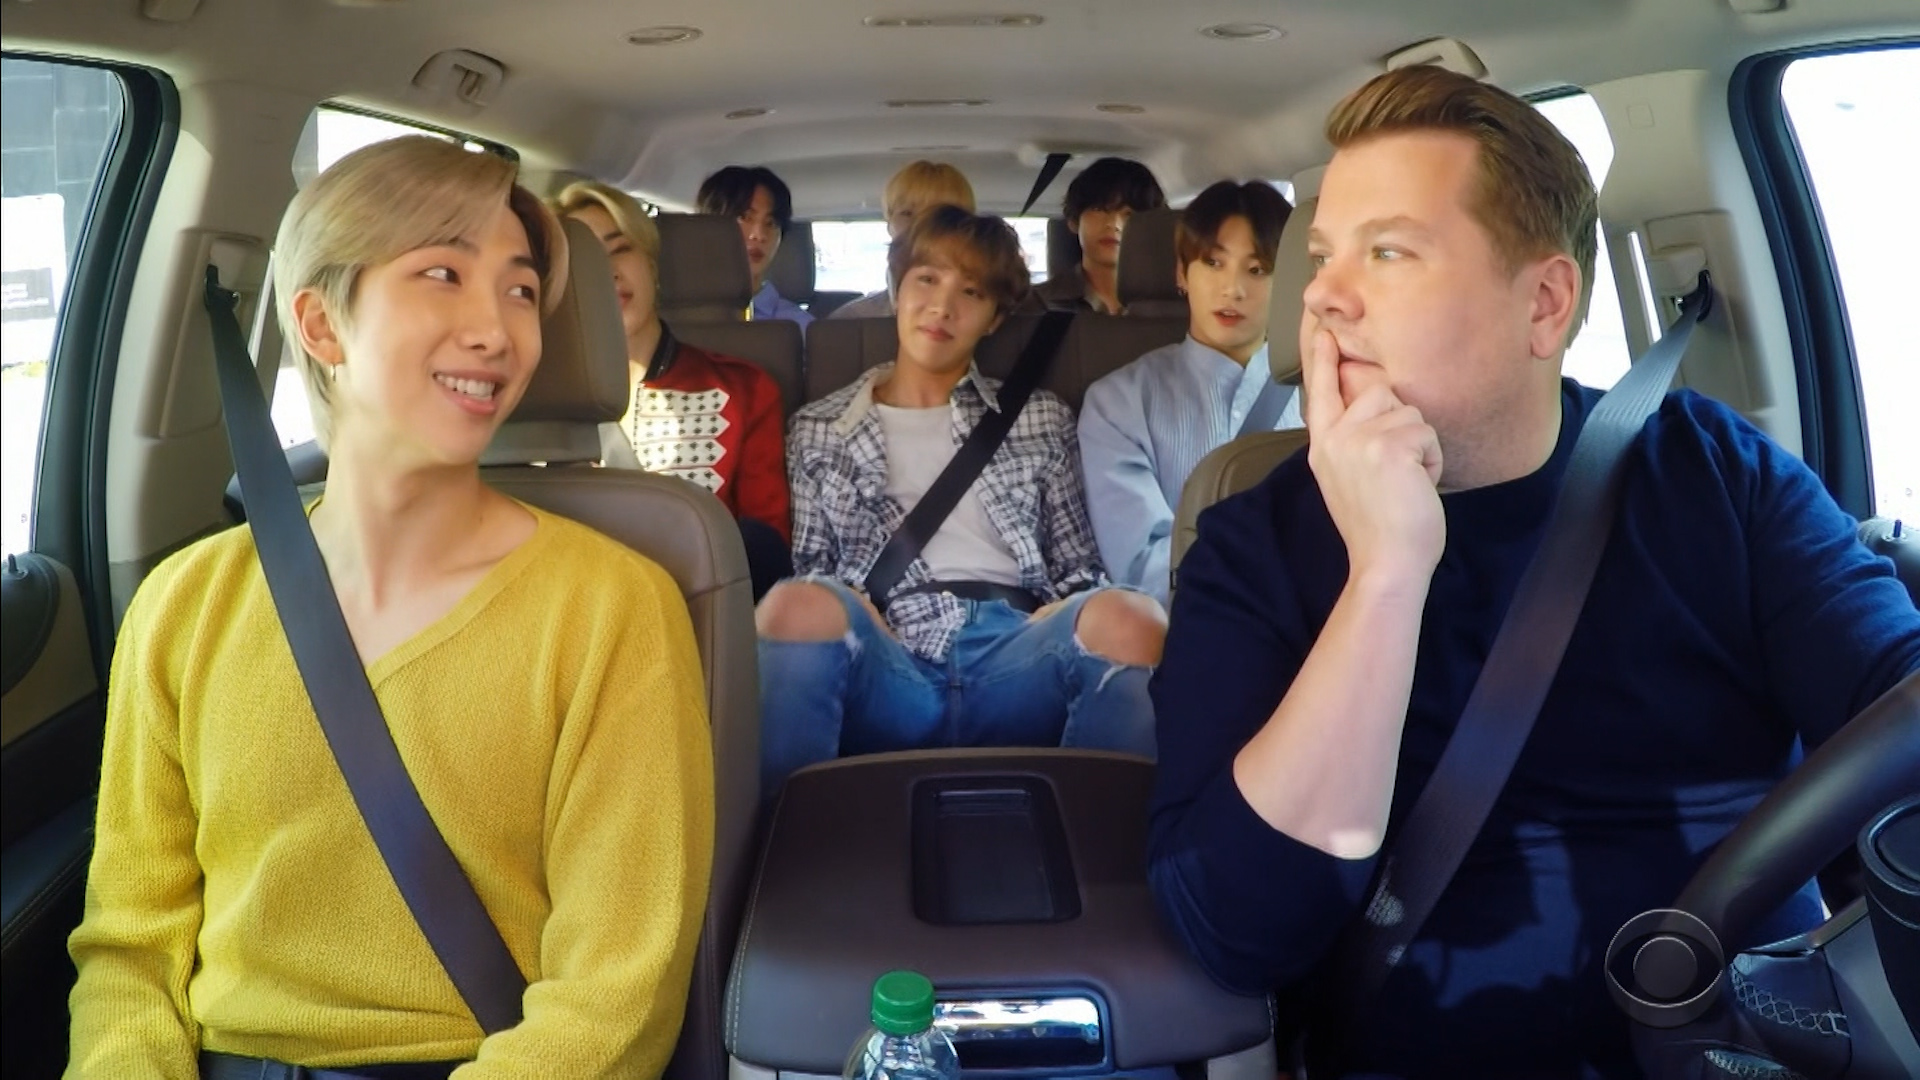 BTS jams out in 'Carpool Karaoke' debut